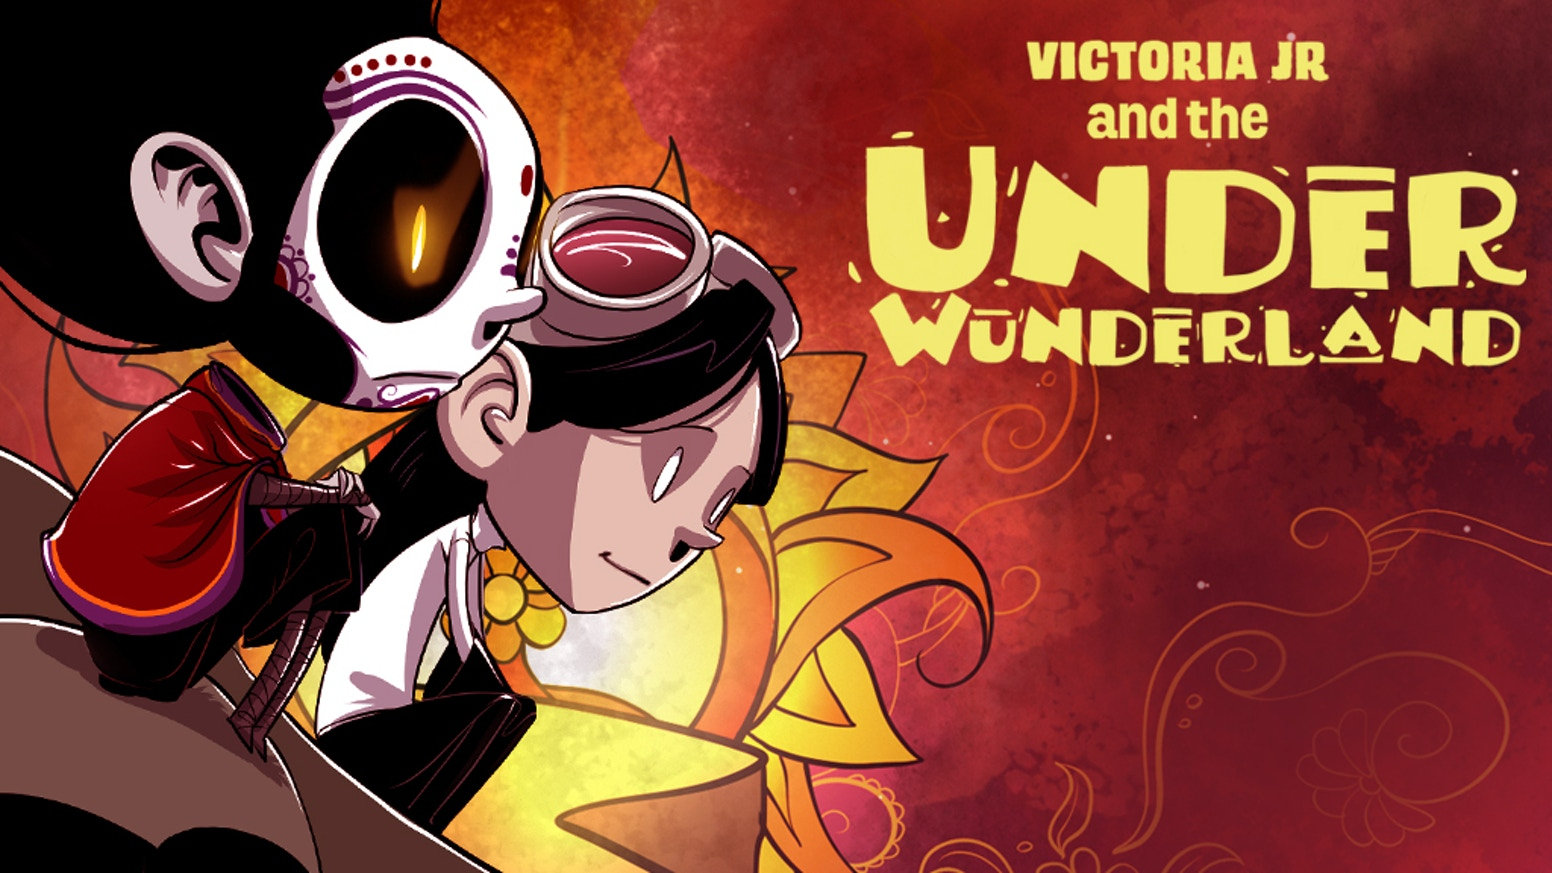 Victoria ventures into the underworld to ask the Lady of Bones for one more day with her deceased goldfish, Mr. Love.